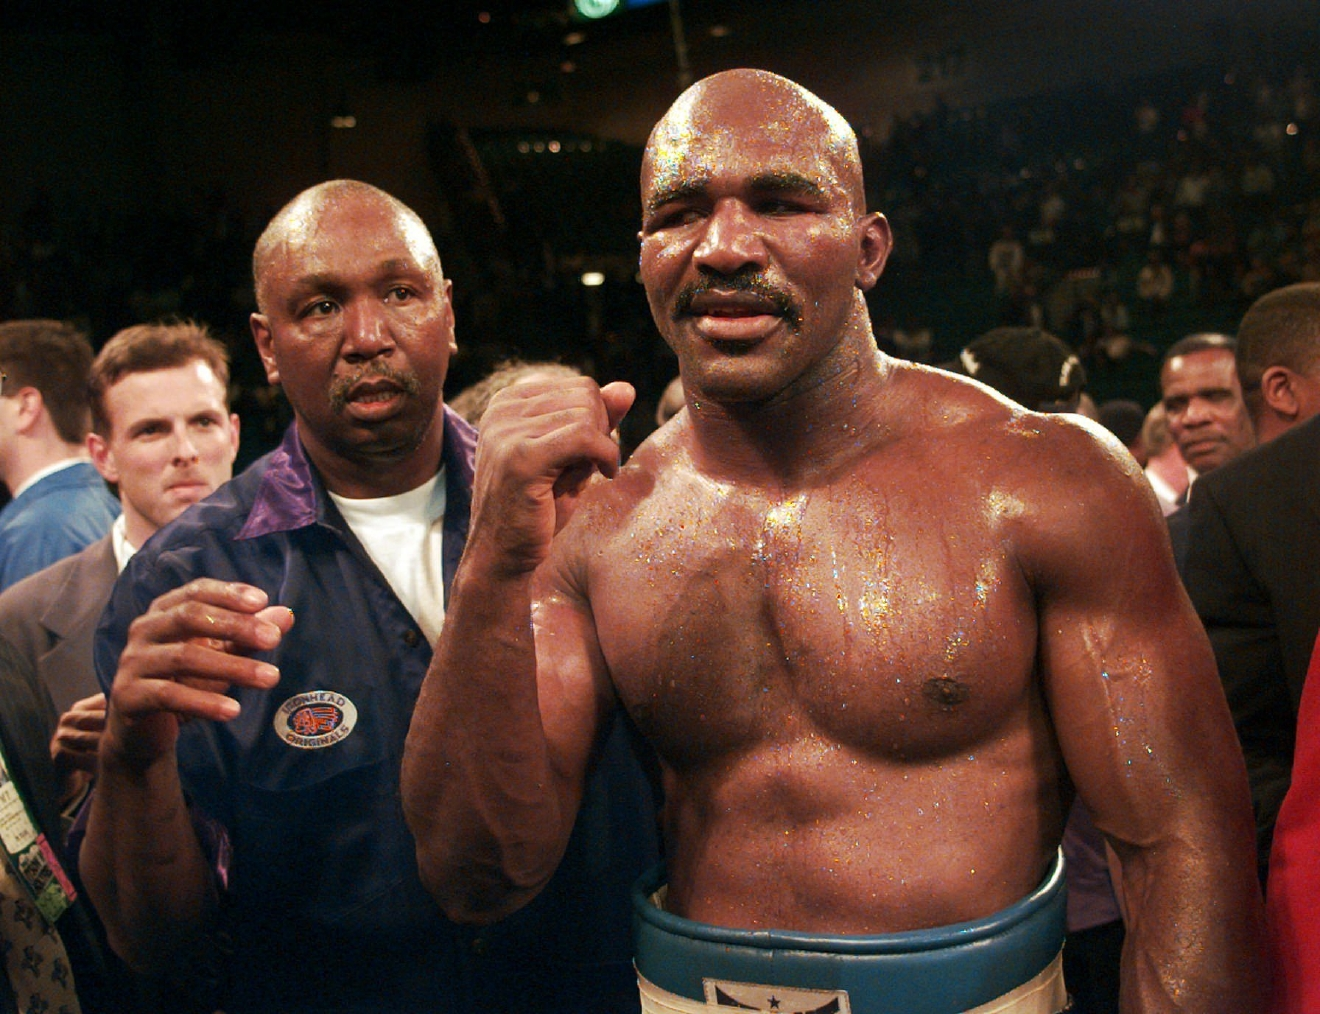 FILE -- In this Nov. 9, 1996, file photo, Evander Holyfield raises his fist after defeating Mike Tyson in their WBA heavyweight championship bout at the MGM Grand Garden in Las Vegas.  Former heavyweight champion Evander Holyfield and three-division champion Marco Antonio Barrera of Mexico head a list of nine people selected for induction into the International Boxing Hall of Fame, Tuesday, Dec. 6, 2016. (AP Photo/ Mark J. Terrill, File)